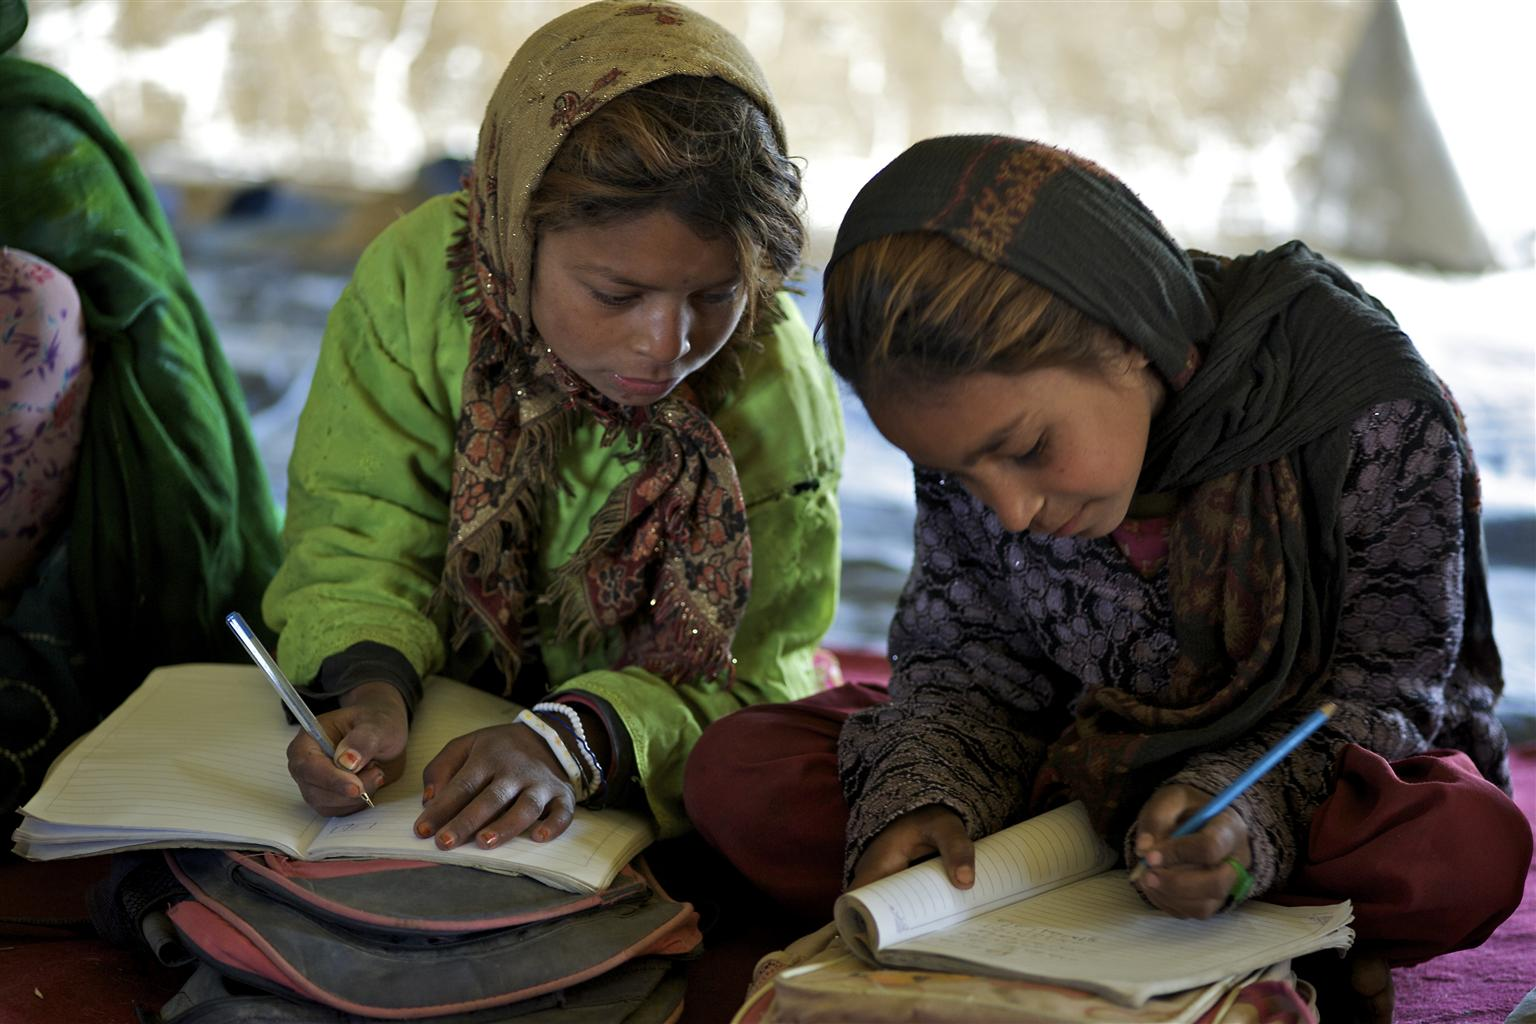 Holia (8 years old) from Jogi ethnic group, writes Dari in her textbook at UNICEF supported Mowla Ali community based school (CBS) in Khurasan neighbourhood in the city of Mazar in northern Afghanistan.